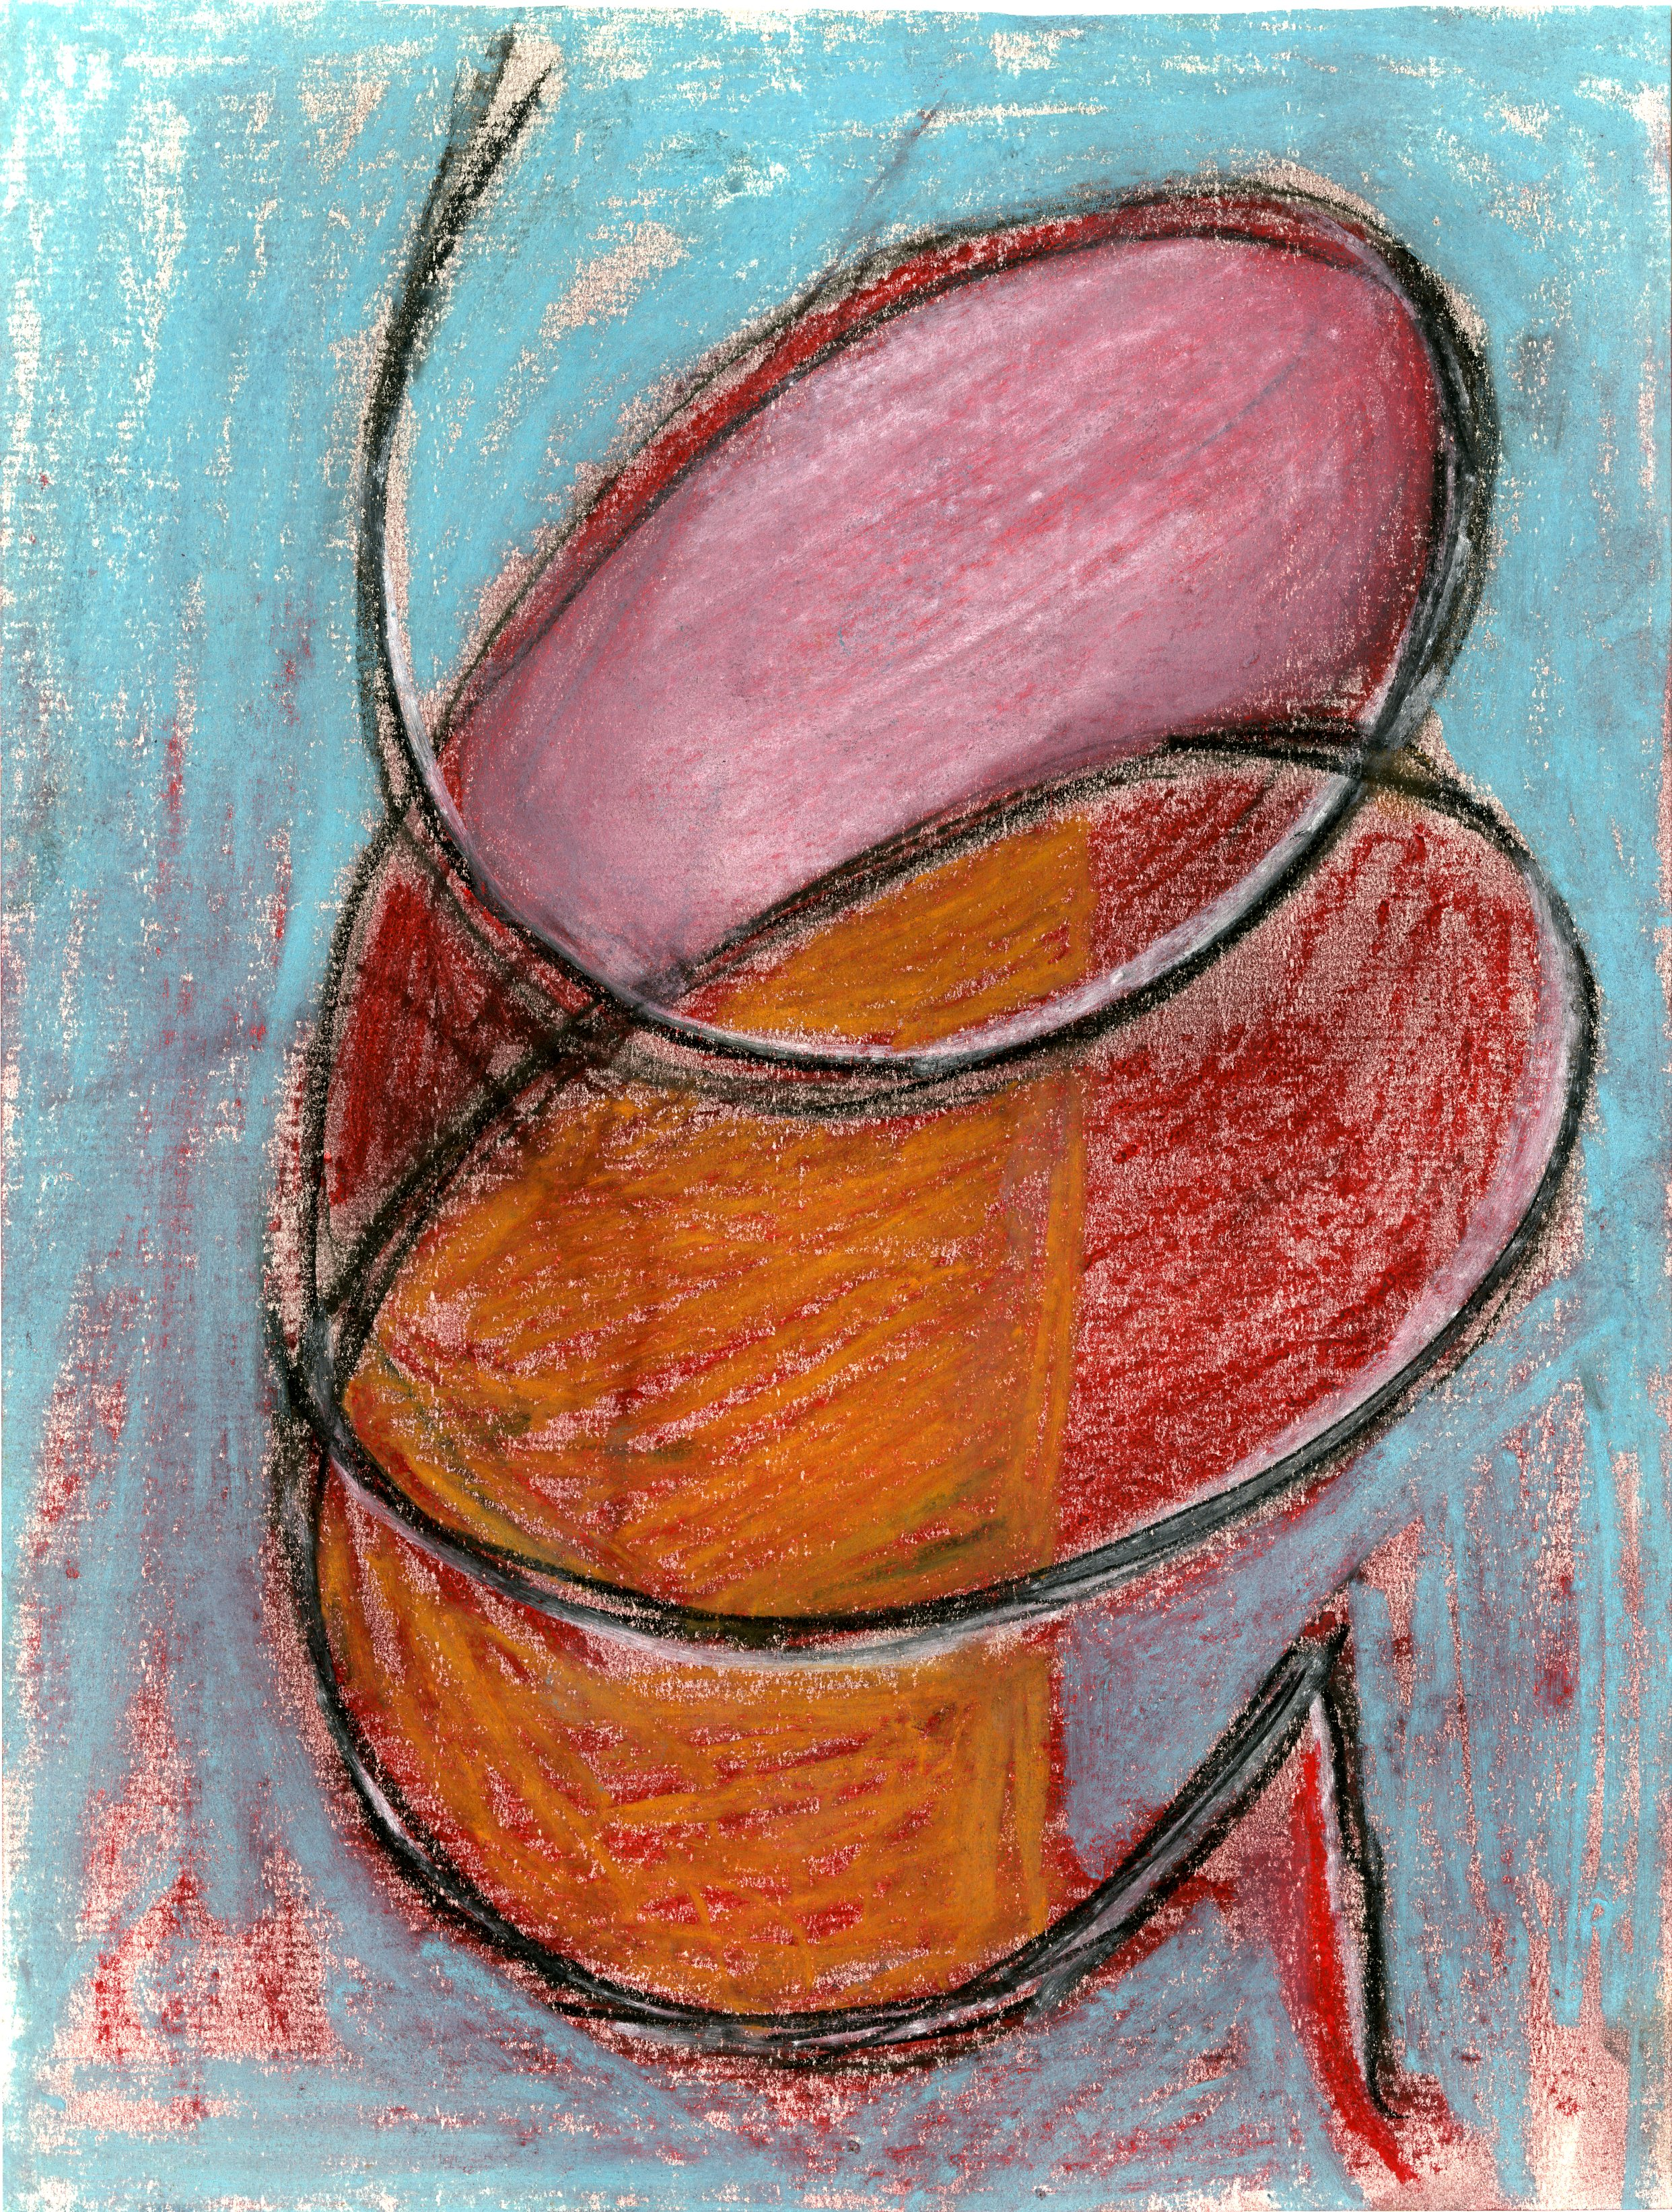 Wire I, 2018 - Soft pastel on paper